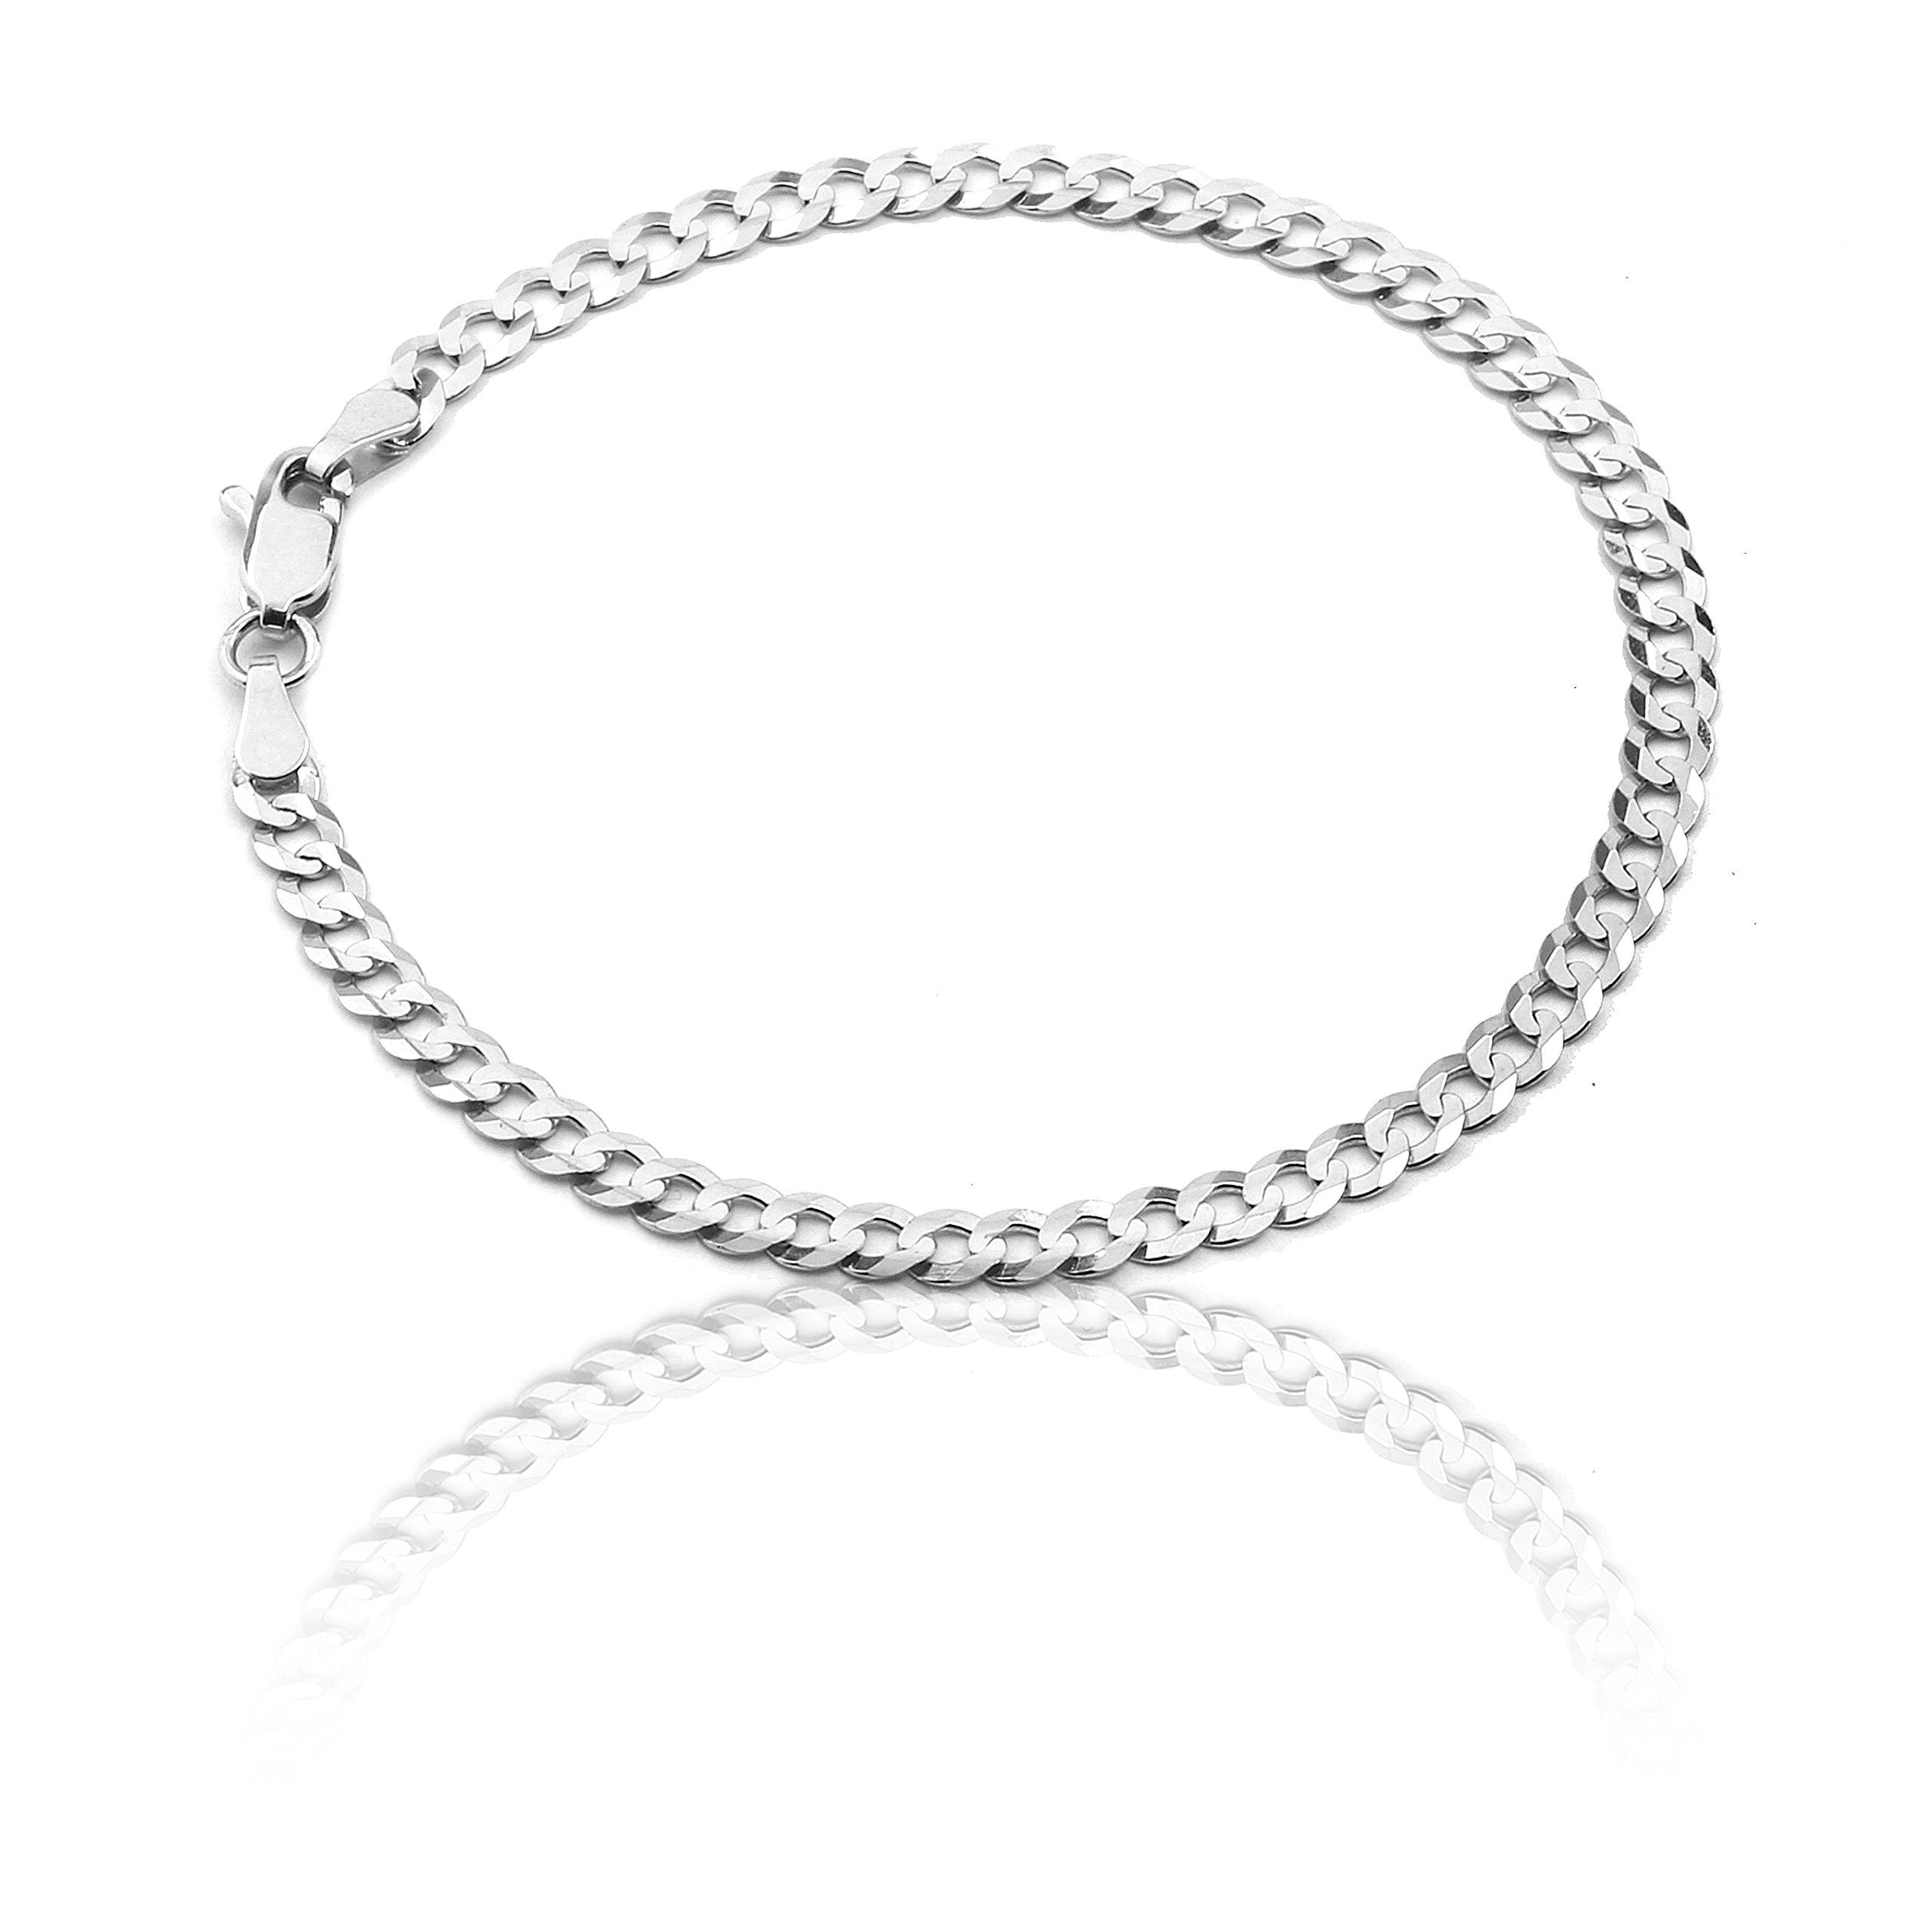 10 Inch White Gold Curb Cuban Chain Ankle Bracelet Anklet for Women and Girls, 0.16 Inch (4mm)